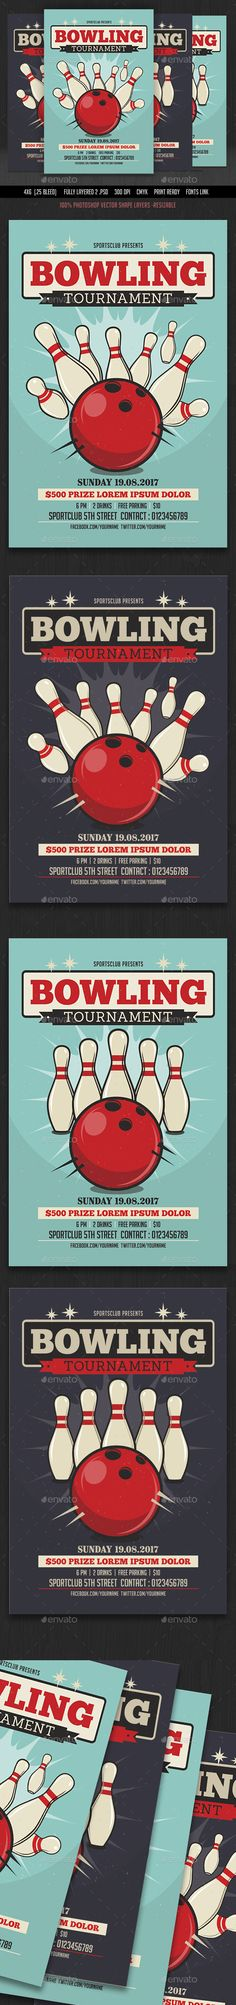 Bowling Tournament Flyer by DesignWorkz14 Bowling Tournament Flyer Fully layered 2 .PSD (Photoshop Layered File) 2 color variations Fully editable 100% Photoshop Vector